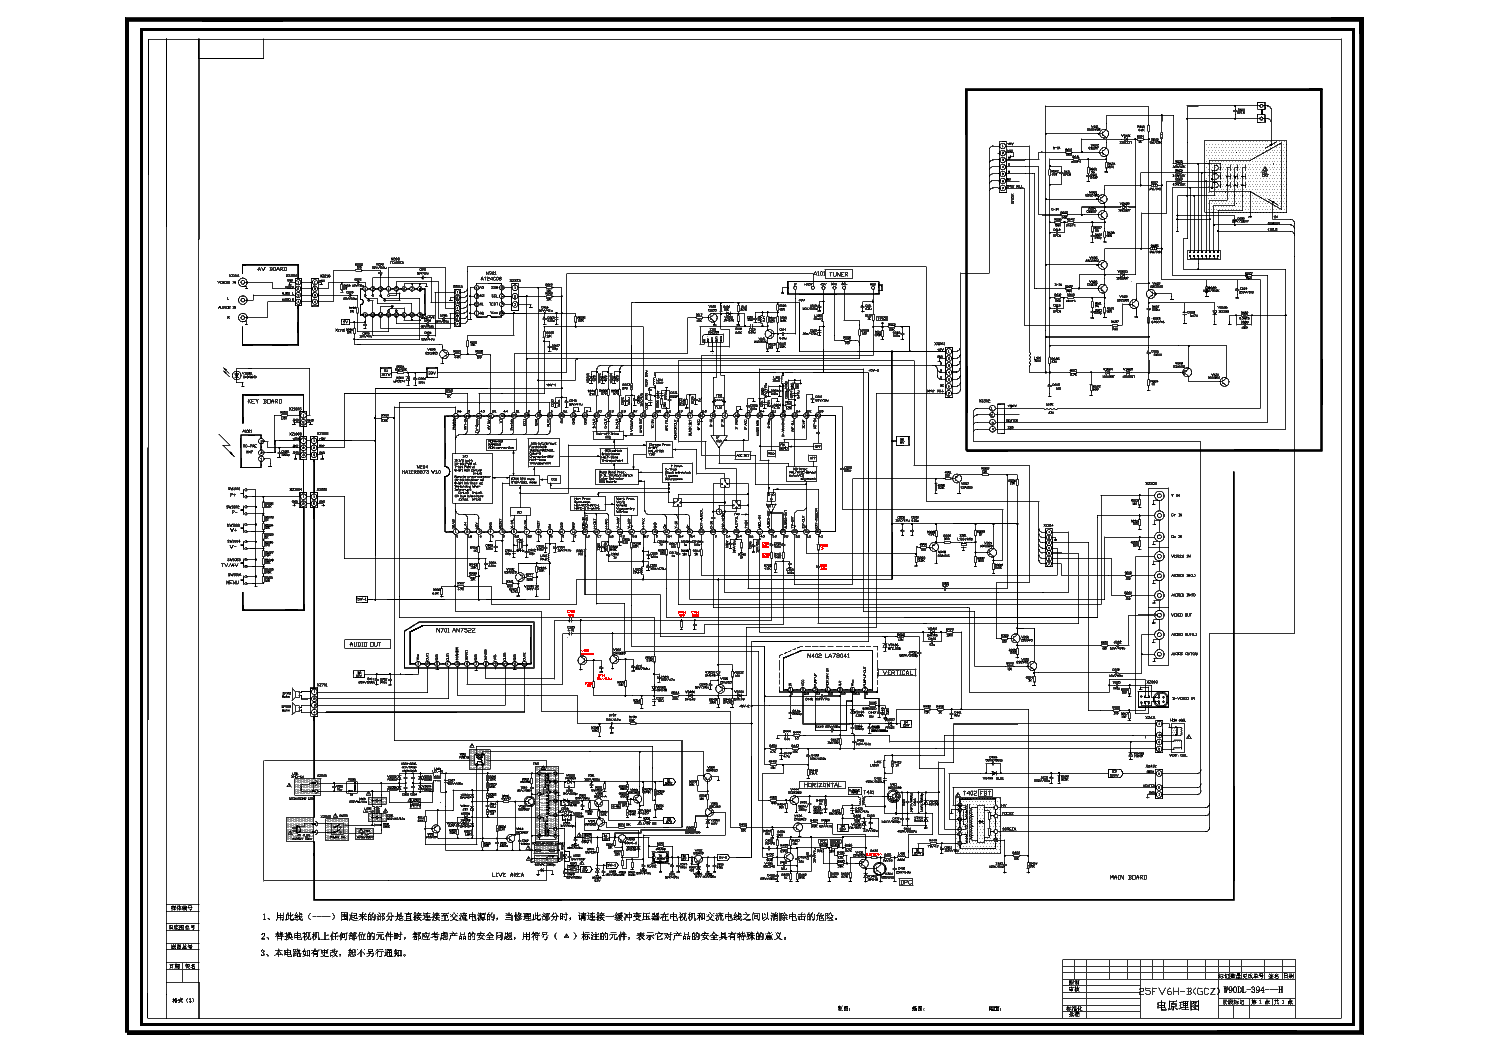 HAIER 15HL25S SM Service Manual free download, schematics